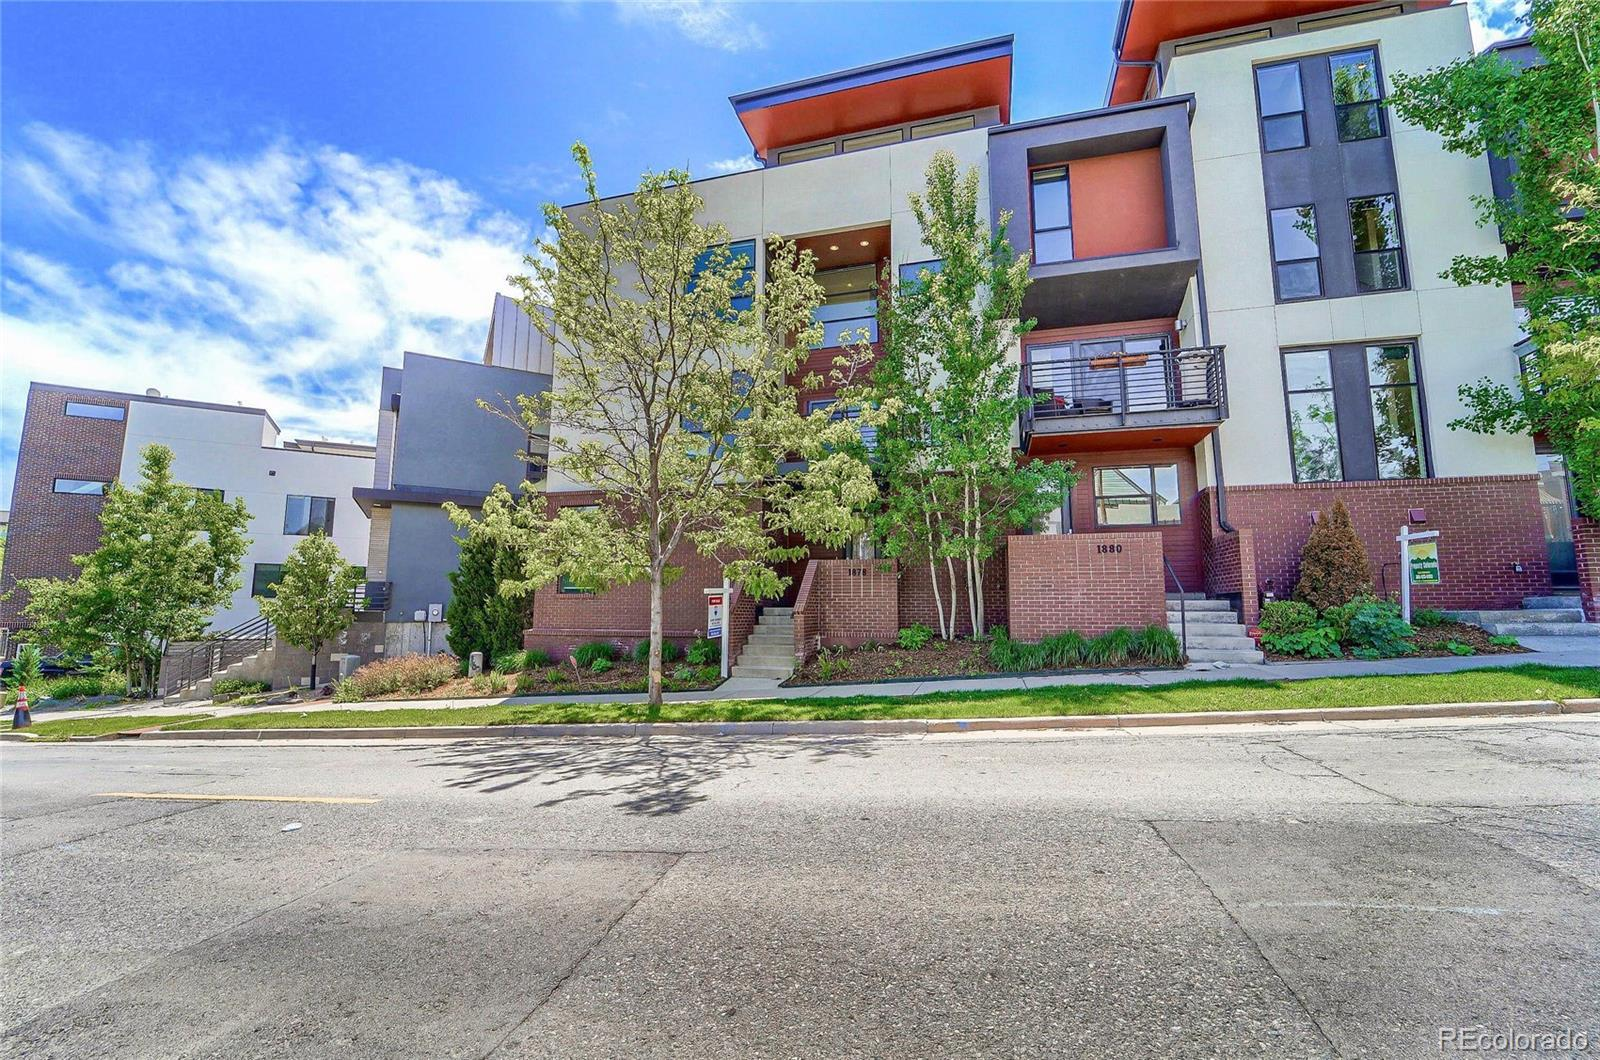 Big price adjustment on this unique Lohi residence. This home is now VACANT so easy to show!!!UNOBSTRUCTED VIEWS OF DOWNTOWN FROM YOUR PRIVATE ROOFTOP DECK!! Live the good life in your light and bright spacious contemporary end unit in a perfect LoHi location. Open floor plan to share a beverage and socialize, cook up a great meal in your modern kitchen, curl up to the TV or read by the fireplace on the open main living level. Or you may decide to enjoy the Colorado open air on the large private rooftop perch with spectacular city skyline views - or add a hot tub as it is engineered for it!  Alternatively, you can spend your evenings enjoying the neighborhood's abundant fine dining and entertainment spots all a short walk away, or walk across the pedestrian bridge to access the wonders of Downtown Denver.  Sleep well in your gorgeous master suite with large closet and luxurious bathroom. The main level bedroom makes a great office or den, and if you are downsizing with lots of stuff, the unit has plenty of storage. The 2-car tandem garage is oversize and the extra space works as a great project area and could even be finished out. This home lives large and has been impeccably maintained. Great alternative to new construction.